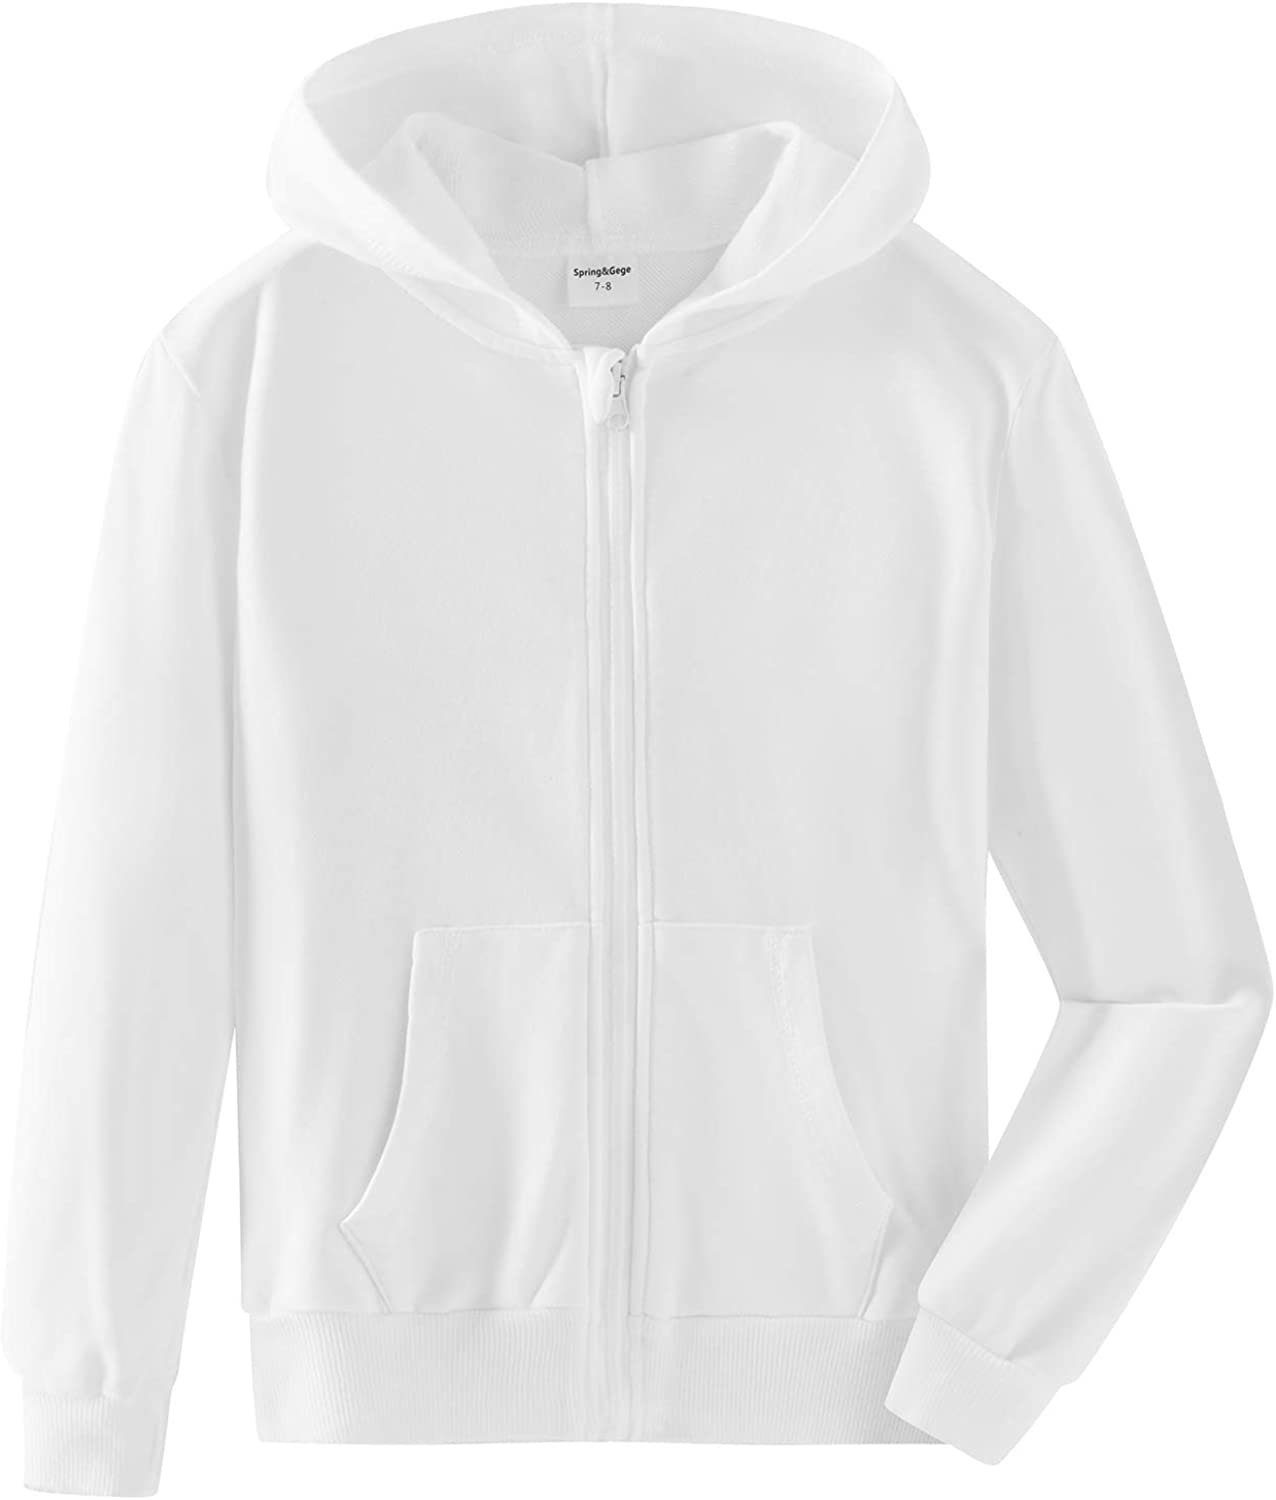 Spring&Gege Youth Solid Classic Hoodies Soft Hooded Full Zip Sweatshirts for Children (3-12 Years)